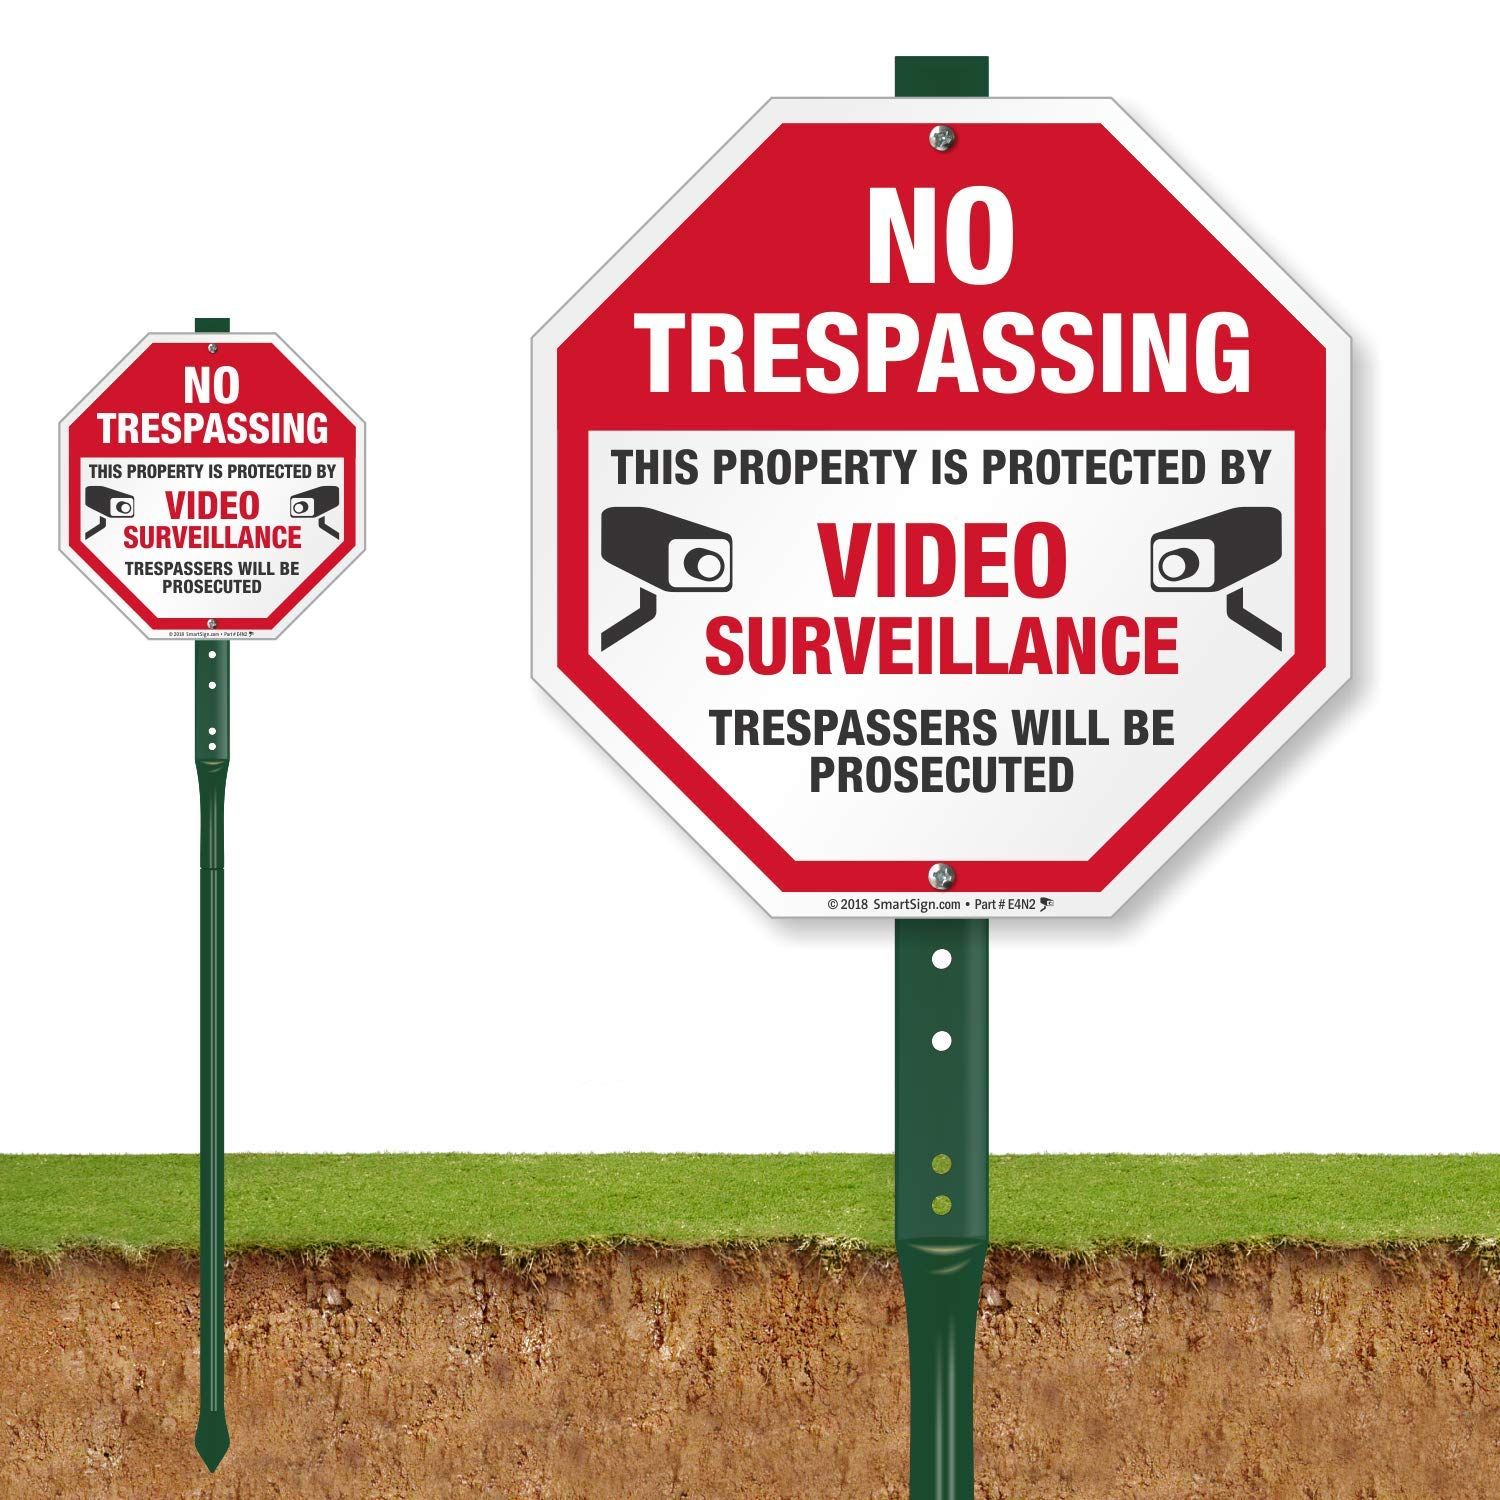 SmartSign ''No Trespassing - This Property is Protected by Video Surveillance, Trespassers Will Be Prosecuted'' Sign for Lawn | 10'' Octagon Aluminum Sign with 3' Stake [New] by SmartSign